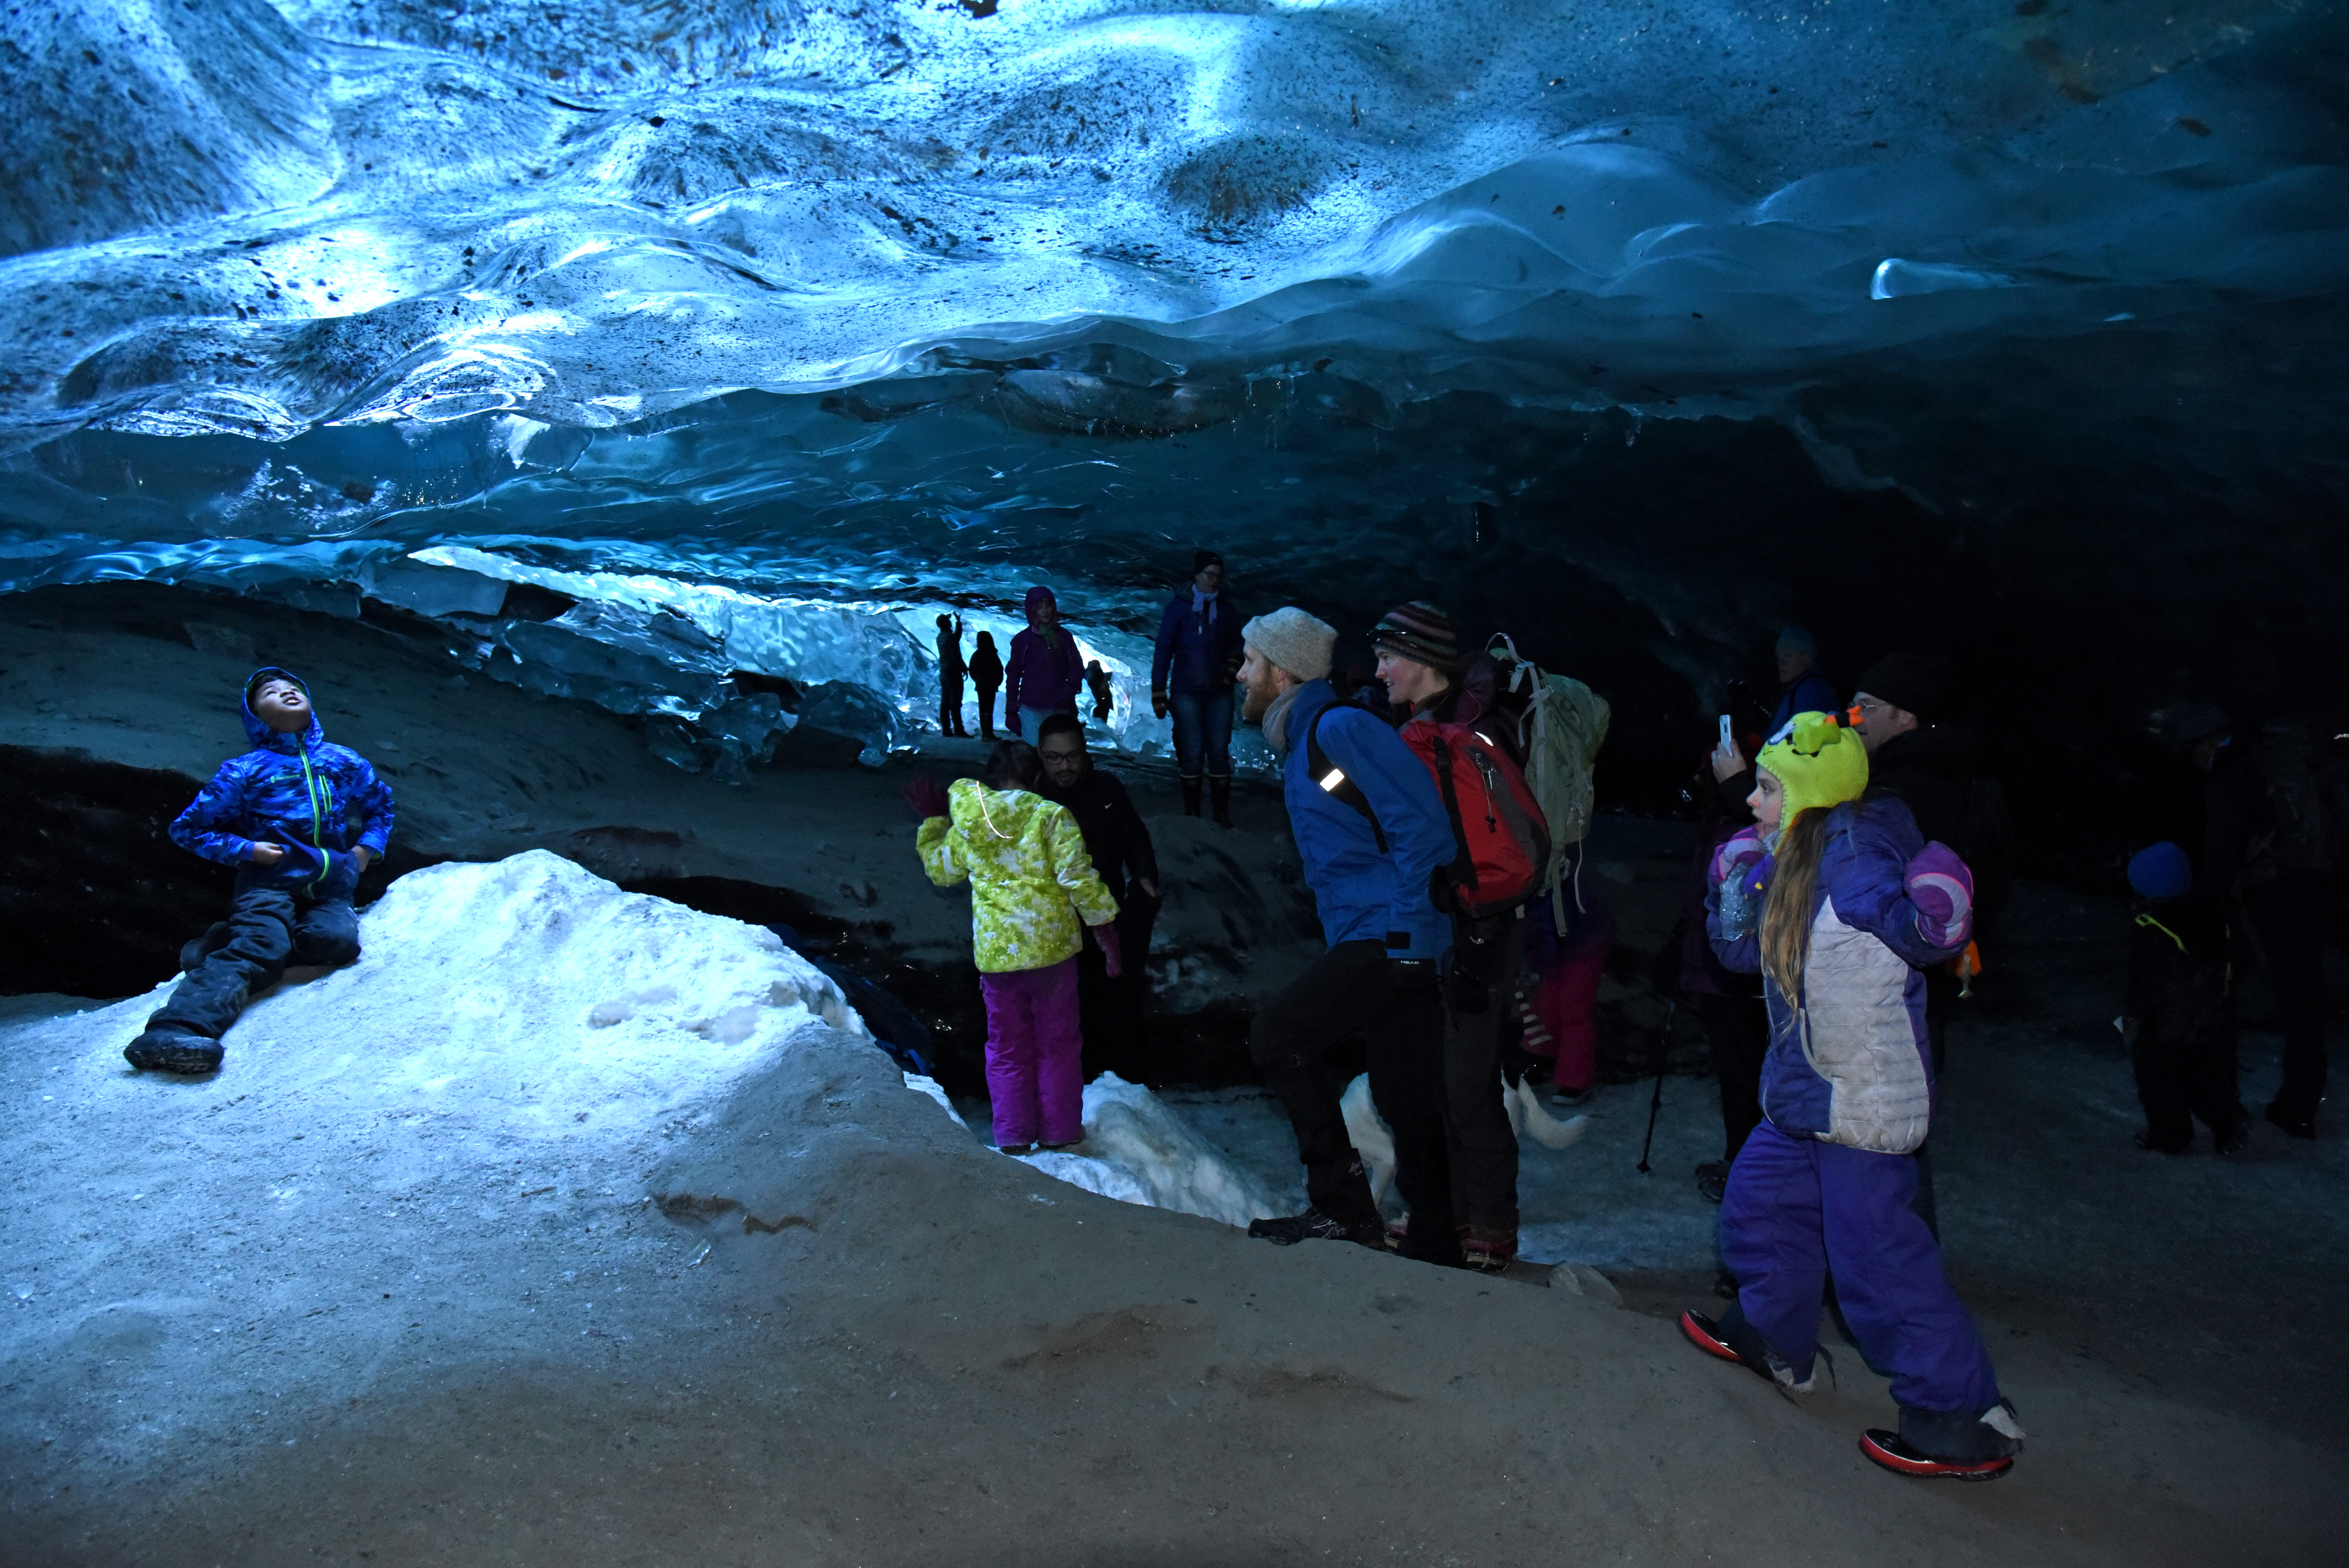 AK: Know the risks before you visit Mendenhall Glacier's newest ice cave